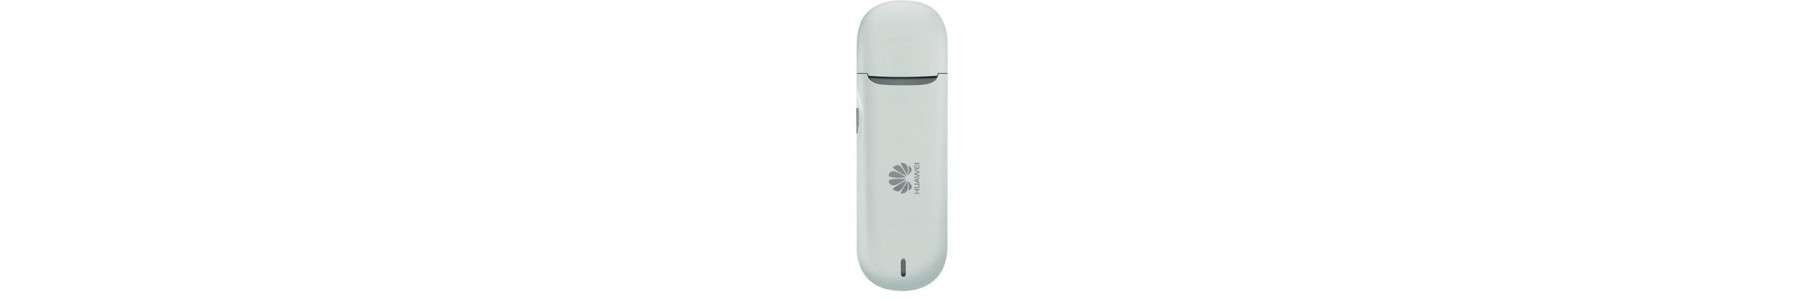 3G Modem for sale | Buy a 3G Dongle Online - Countrywide Delivery